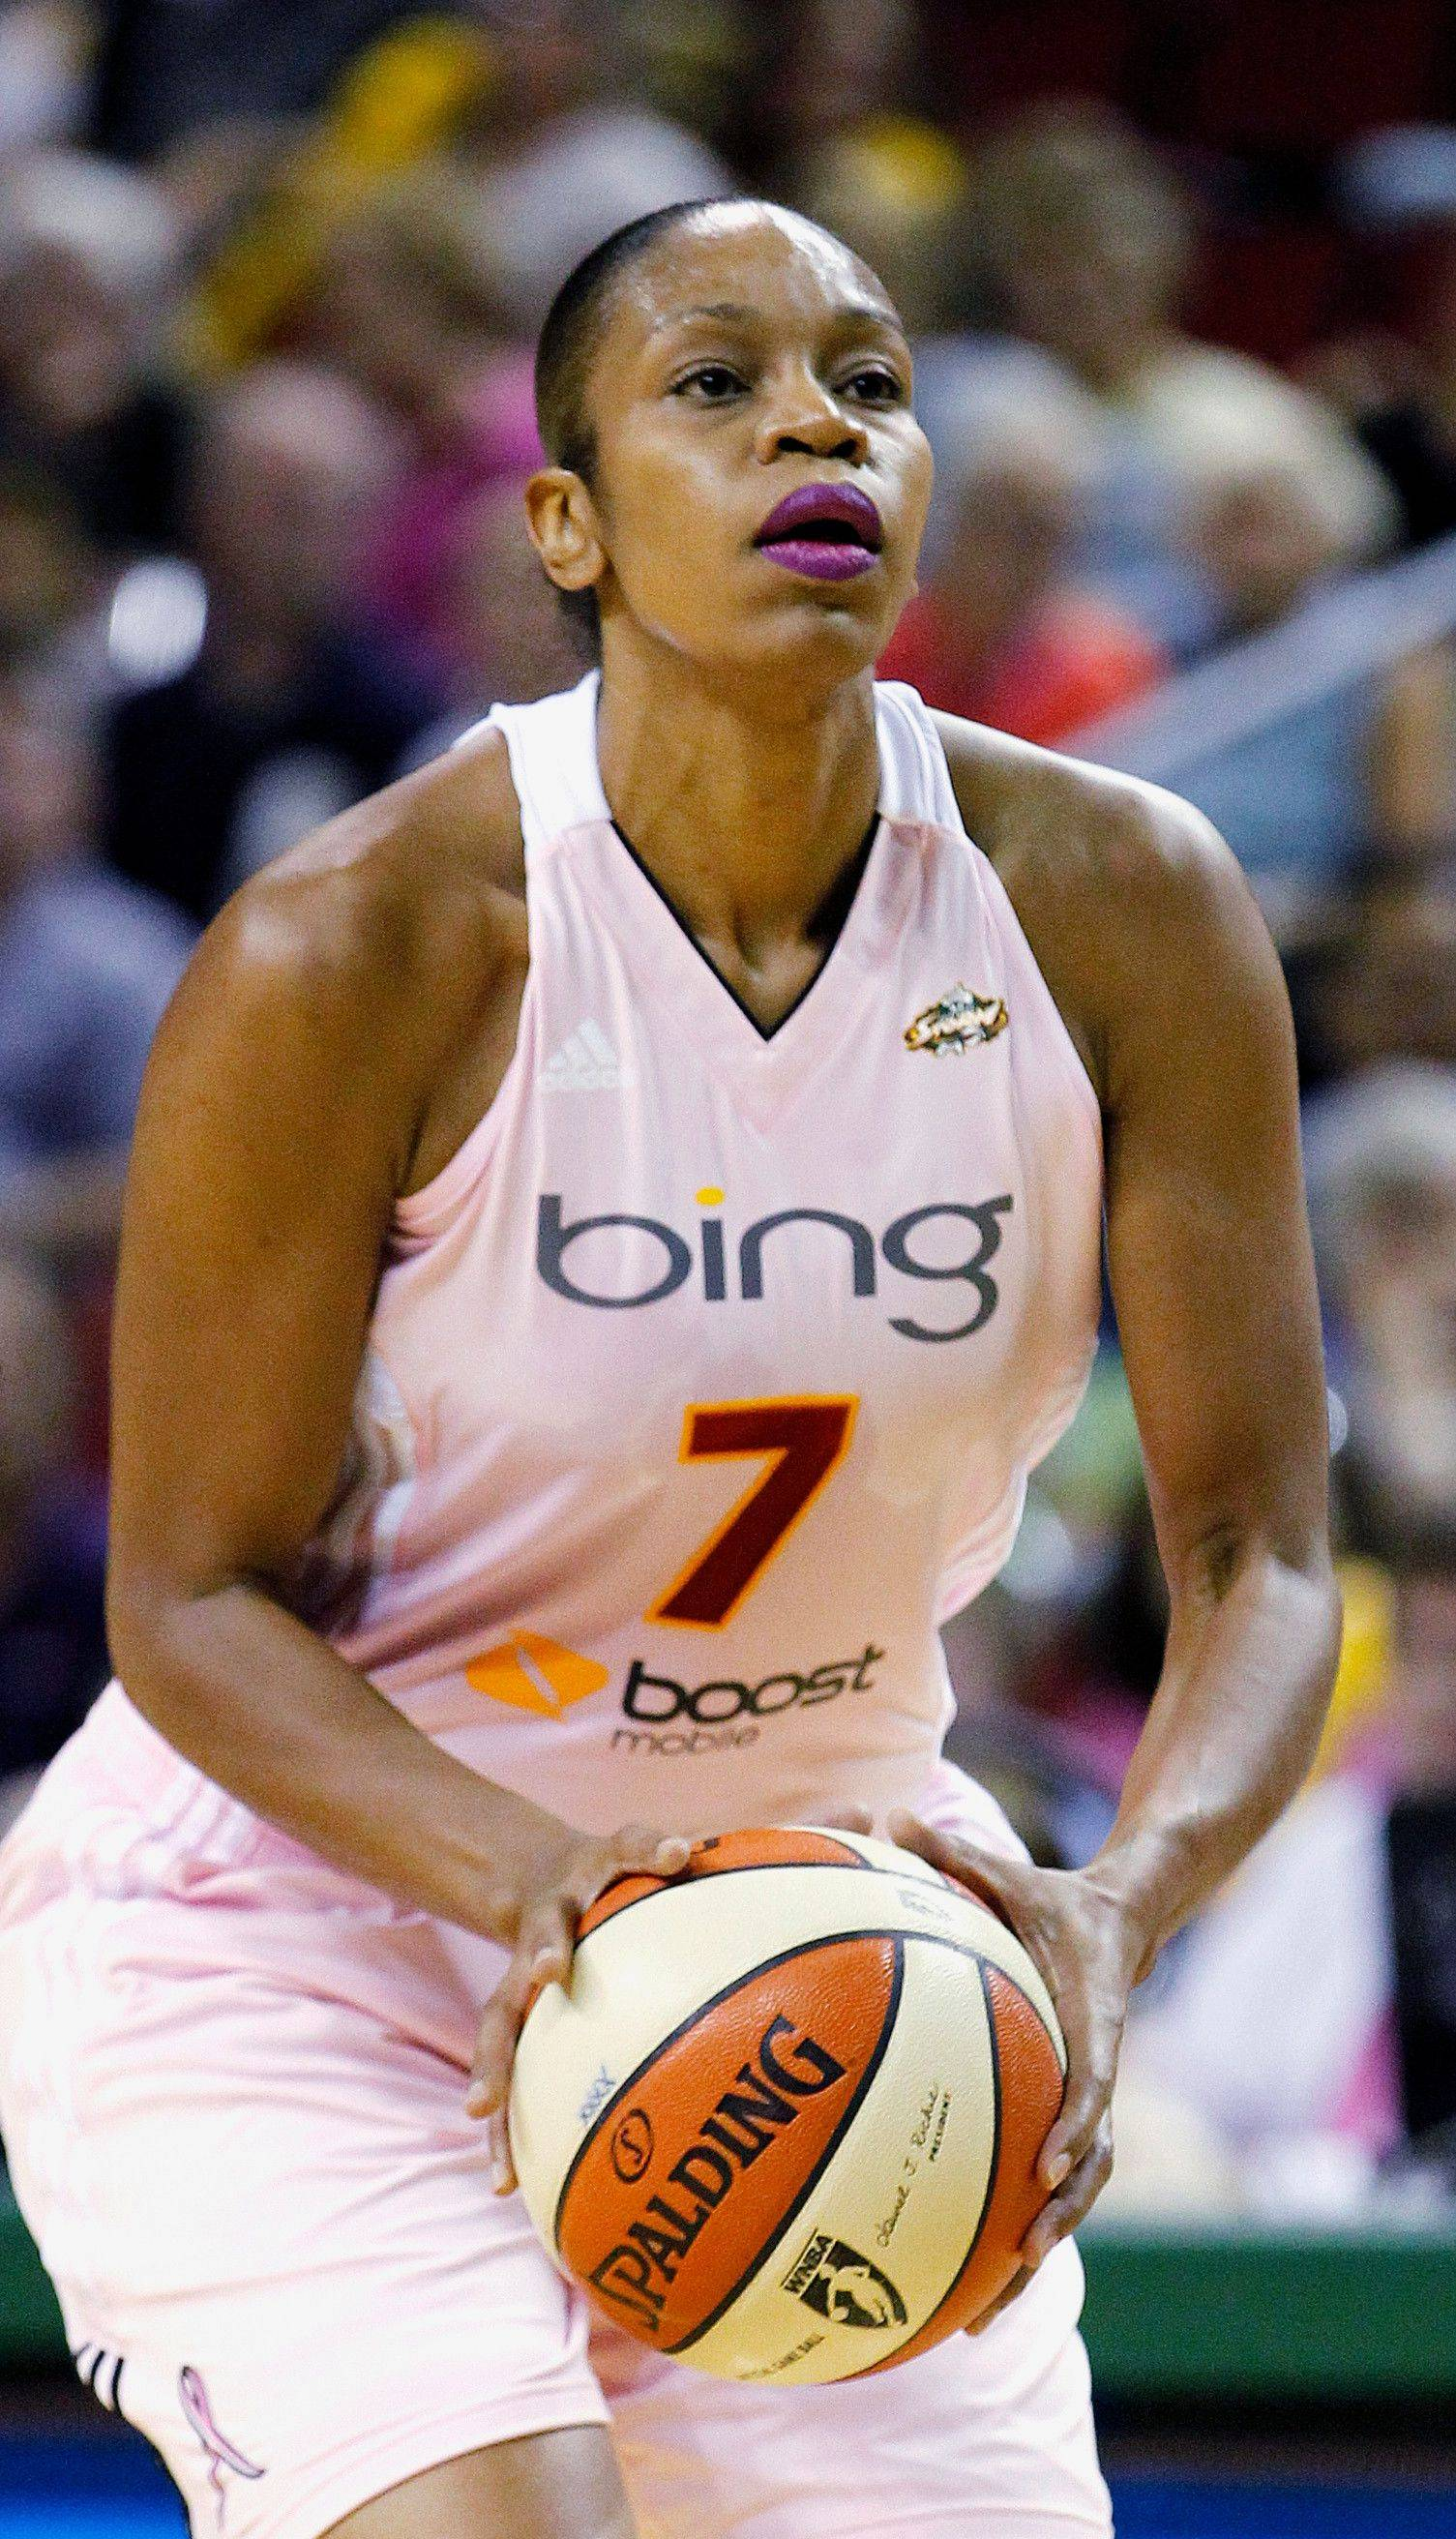 Seattle Storm's Tina Thompson lines up to take a shot against the Chicago Sky during the first half of a game last season. Thompson will retire after this season, her 17th in the league.